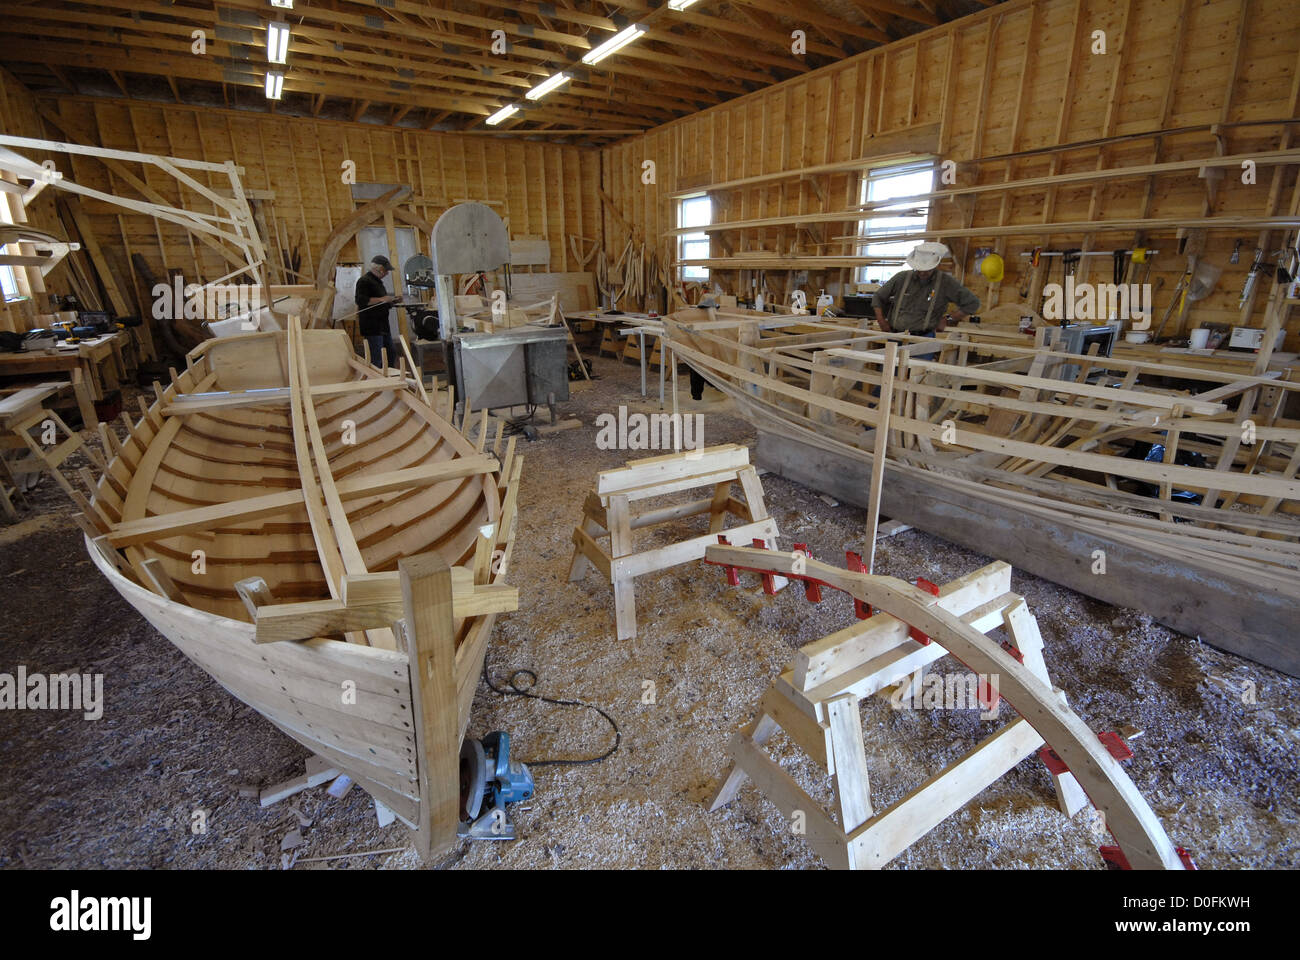 Wooden Boat Museum Canada Stock Photos Wooden Boat Museum Canada